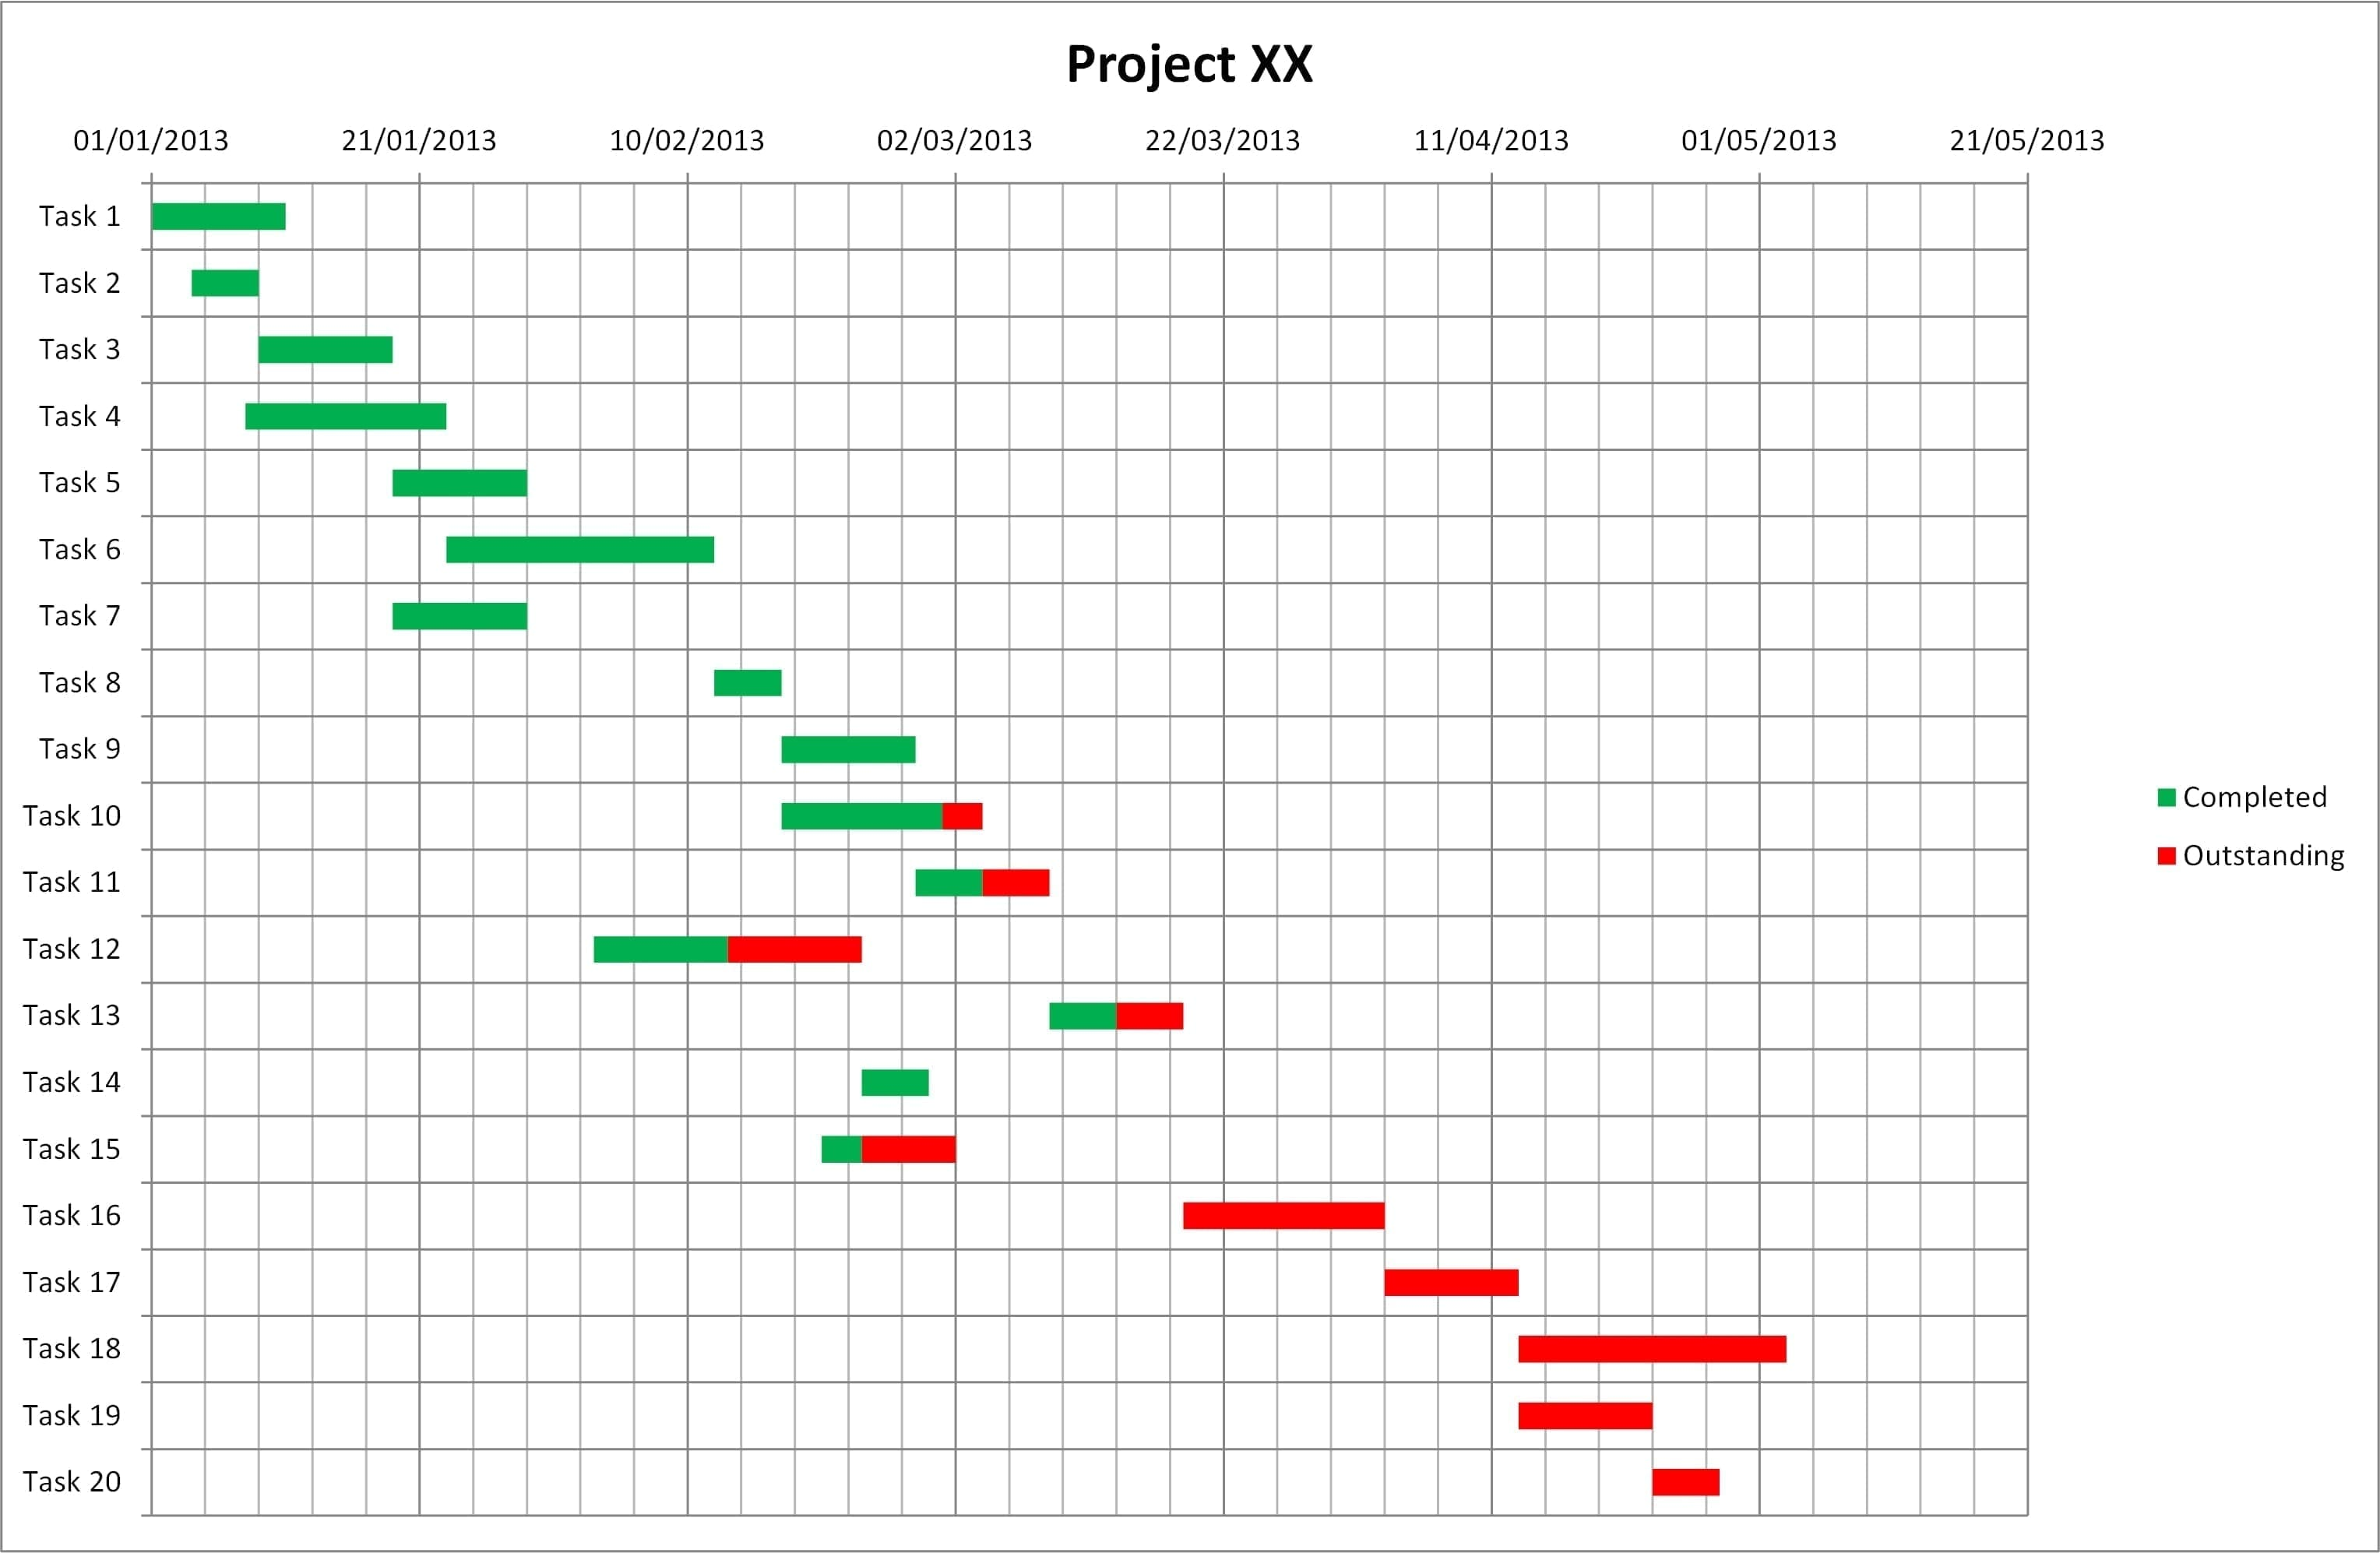 Gantt Chart Excel Template 2013 Excel 2010 Gantt Chart Template Gantt Chart Excel 2010 Download Gantt Spreadsheet Excel Sample Excel Gantt Chart Template Conditional Formatting Excel Gantt Chart Template With Dependencies Free Gantt Chart Template Excel 2013